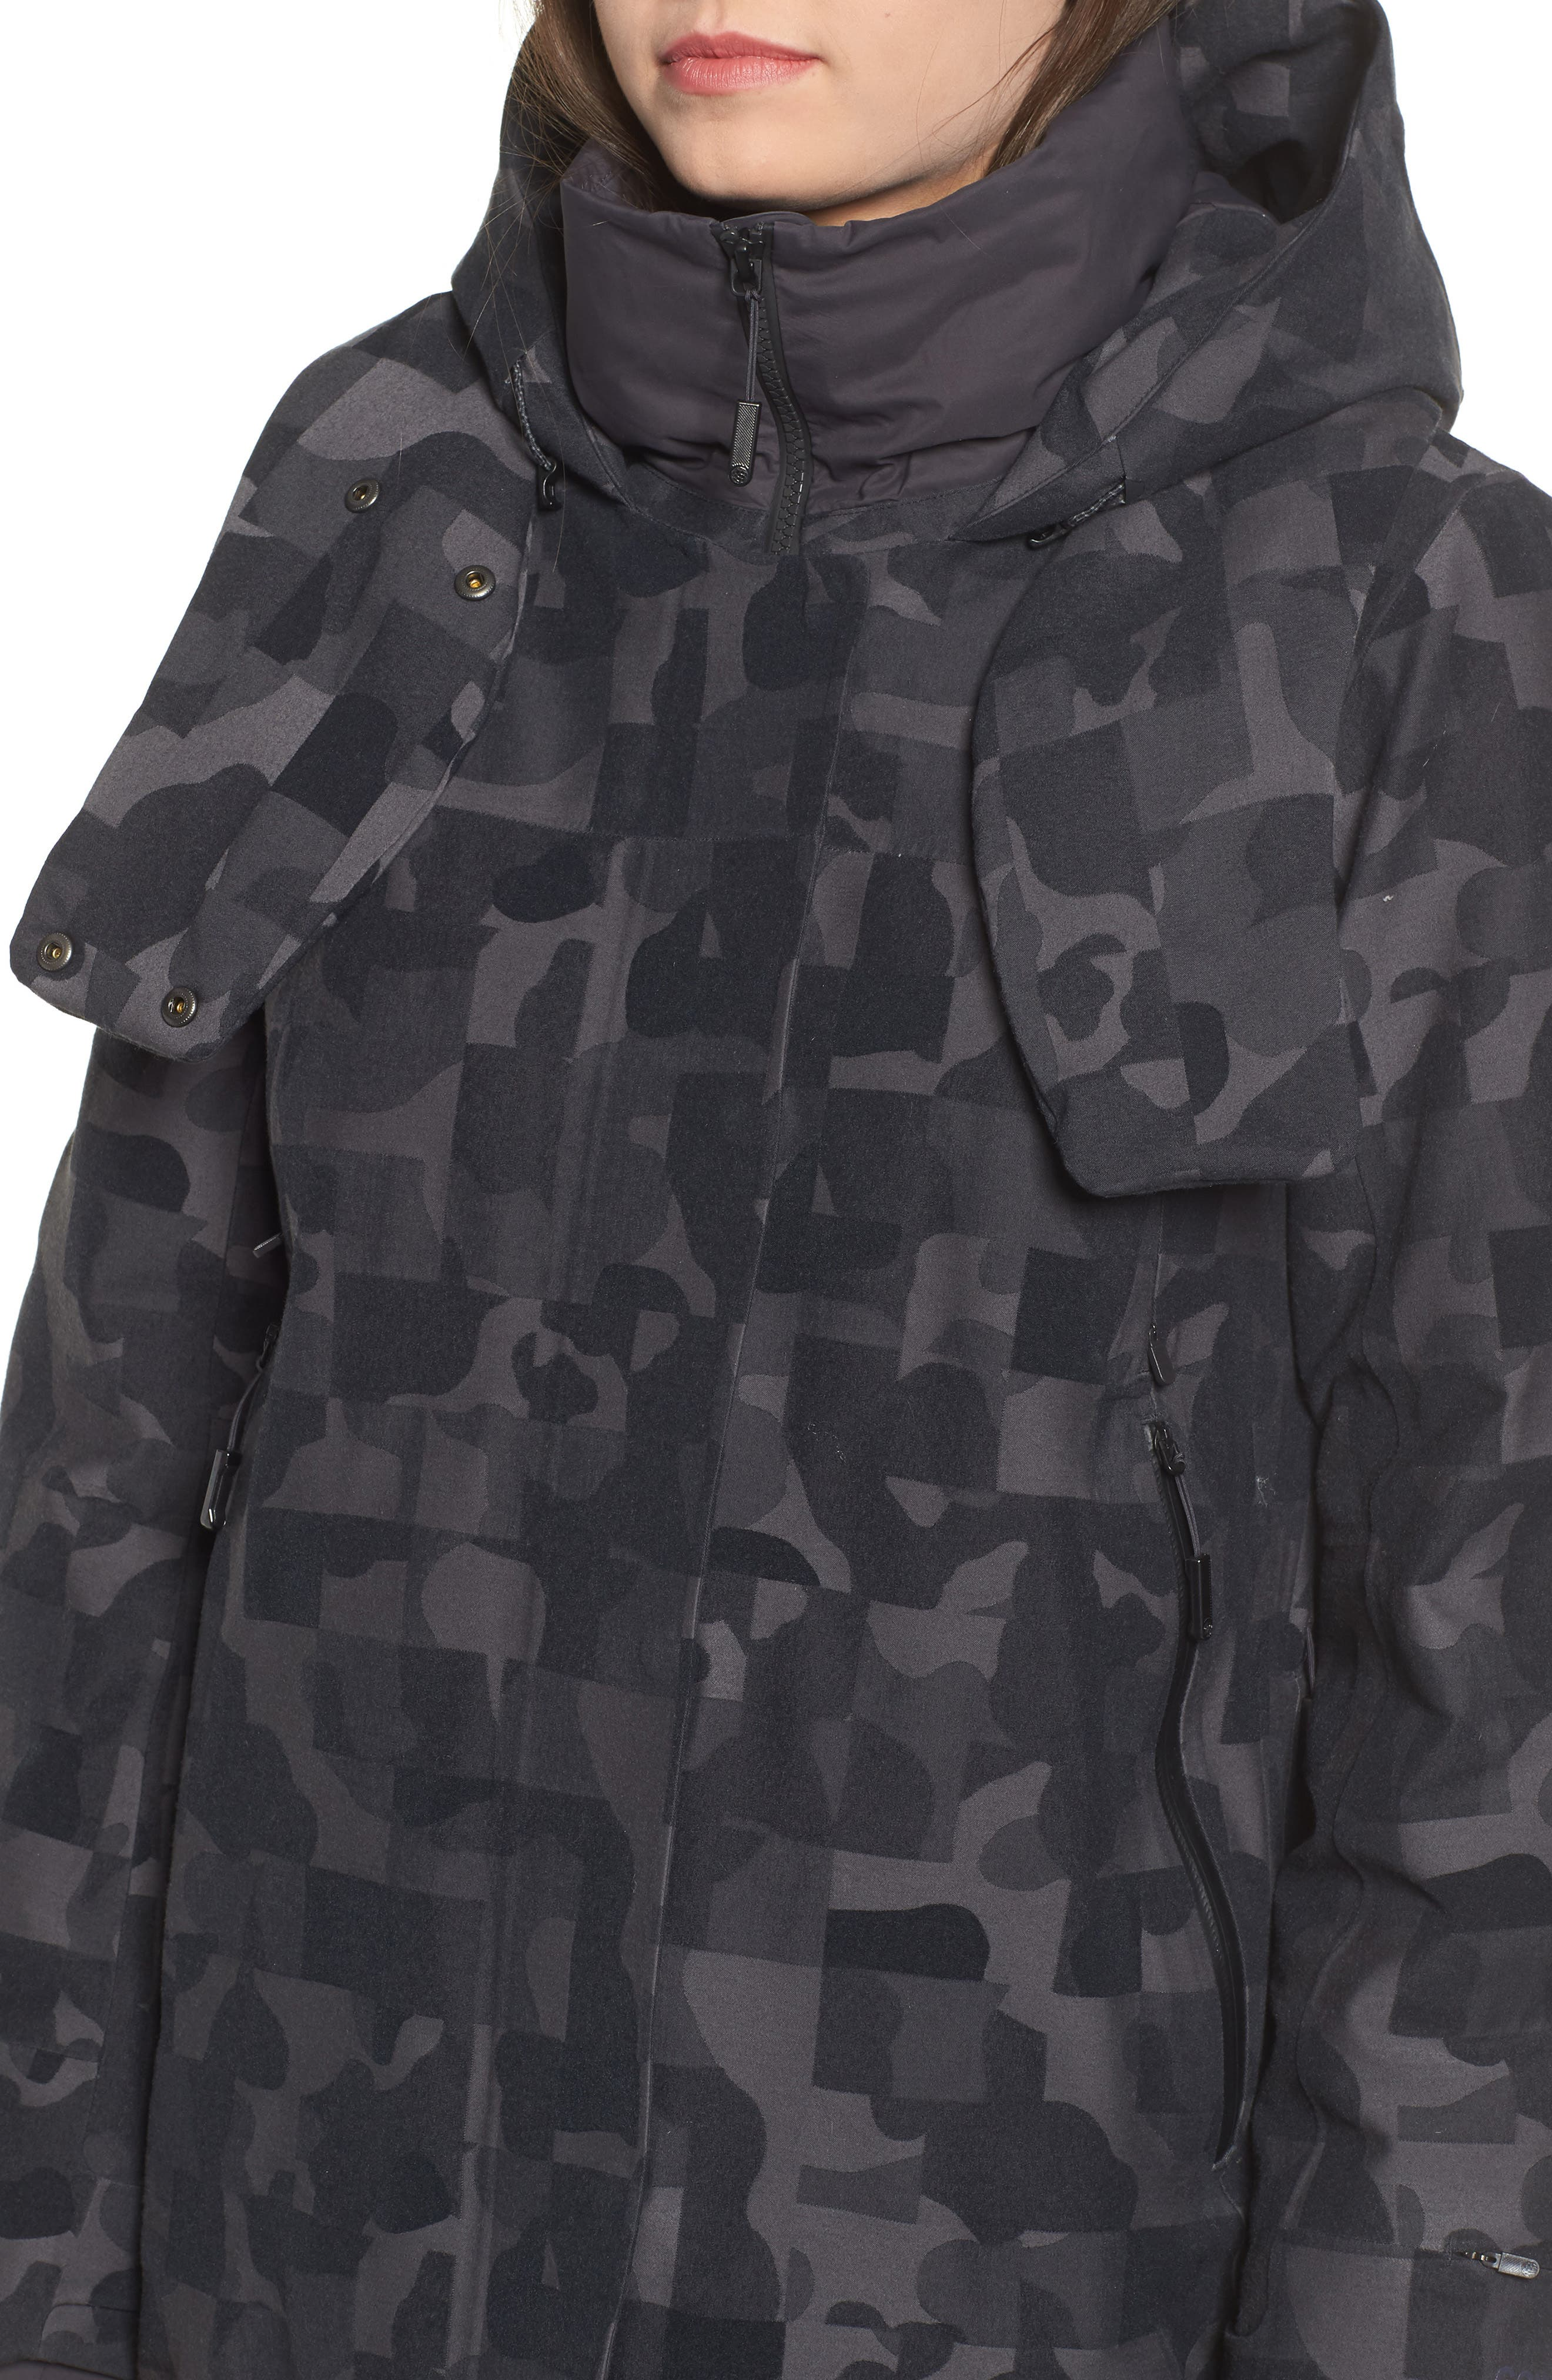 Cryos Expedition 800 Fill Power Down Gore-Tex<sup>®</sup> Parka,                             Alternate thumbnail 4, color,                             001